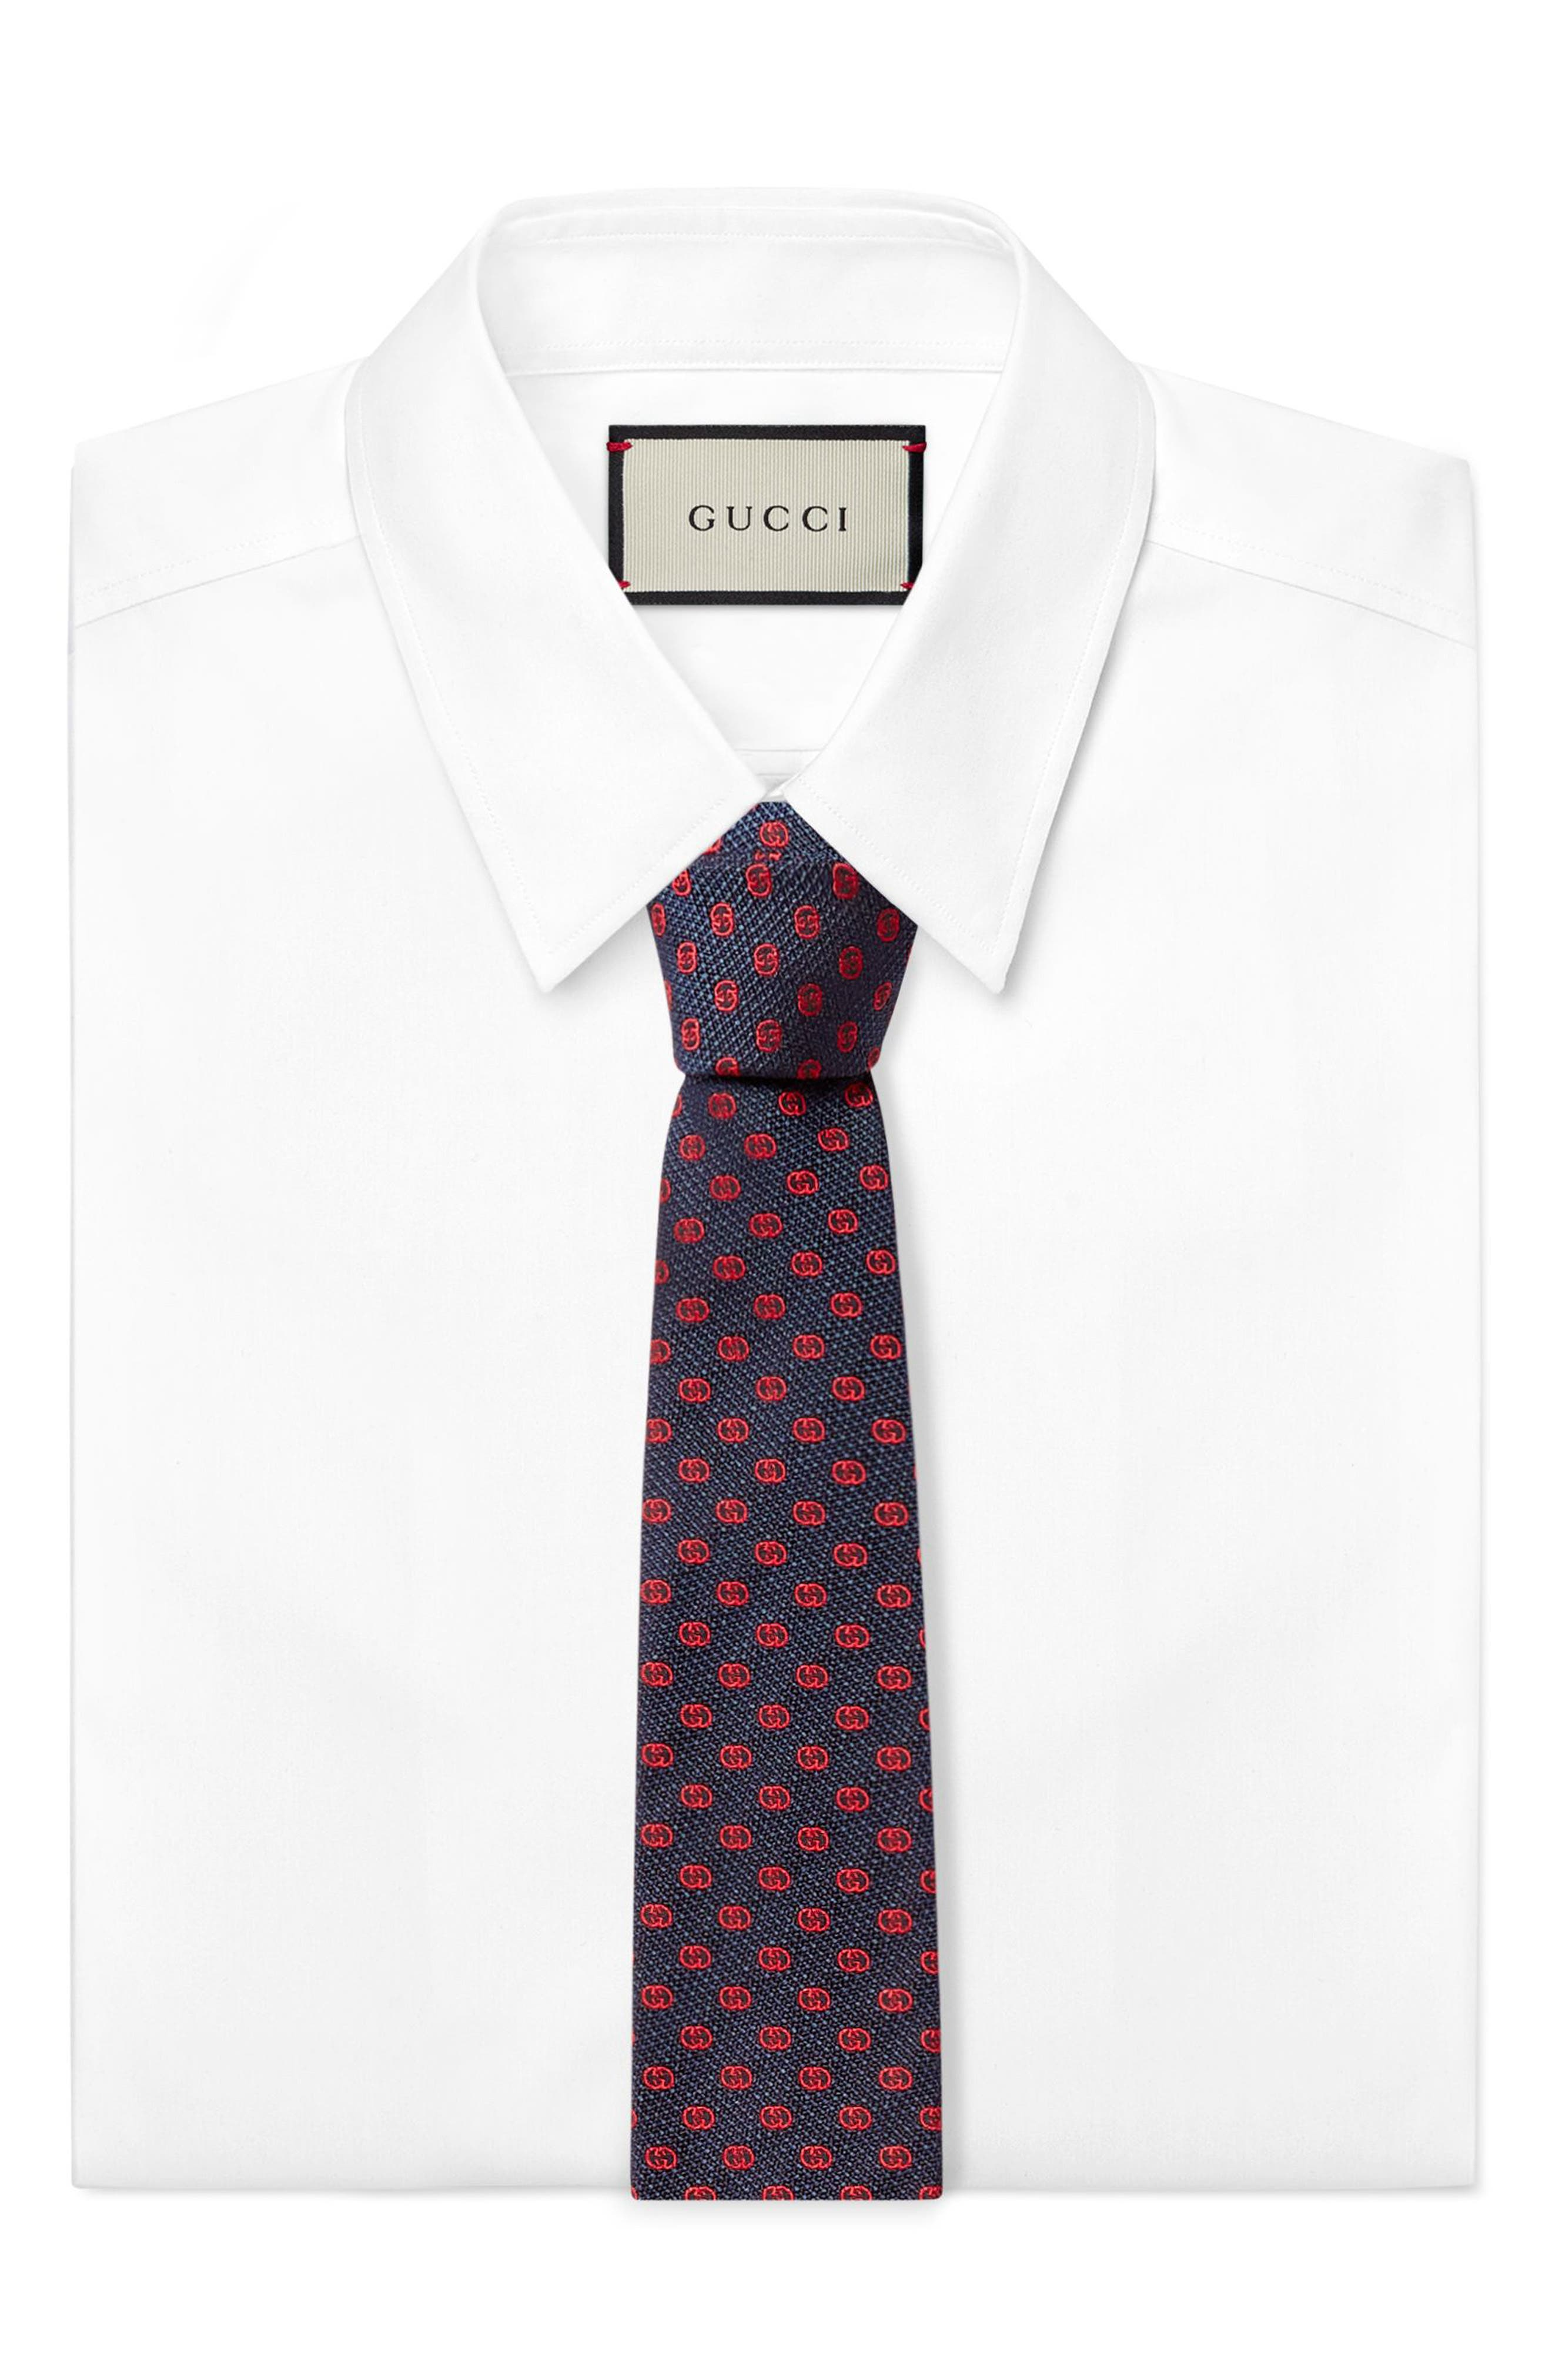 66a971eb4bb3 Men s Gucci Ties